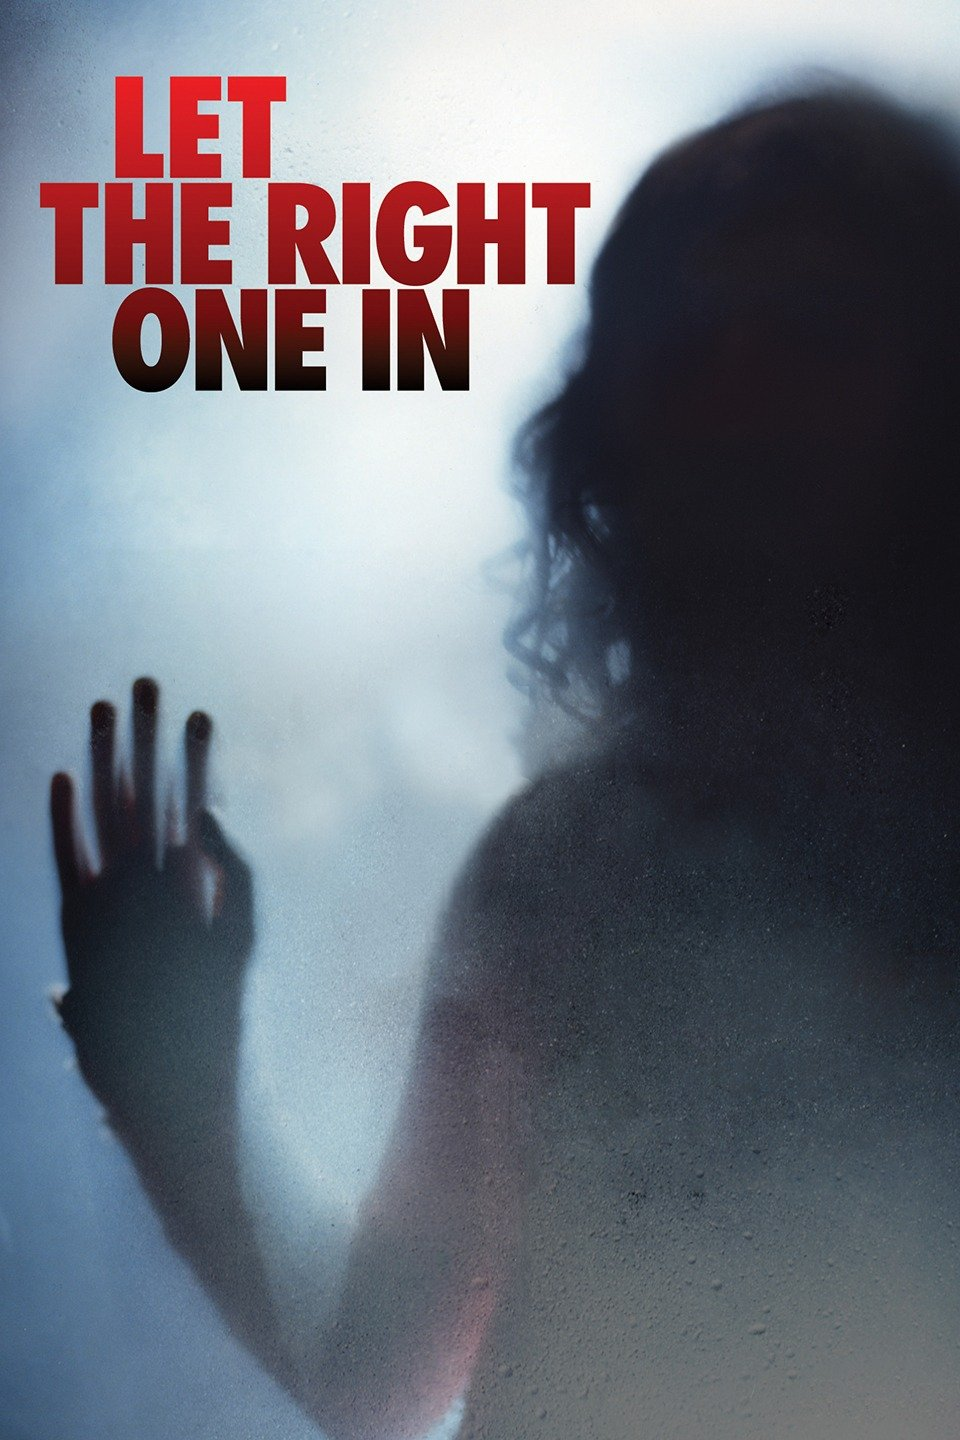 Let the Right One In (2008) 1080p BrRip Hollywood Movie Download From Extratorrent